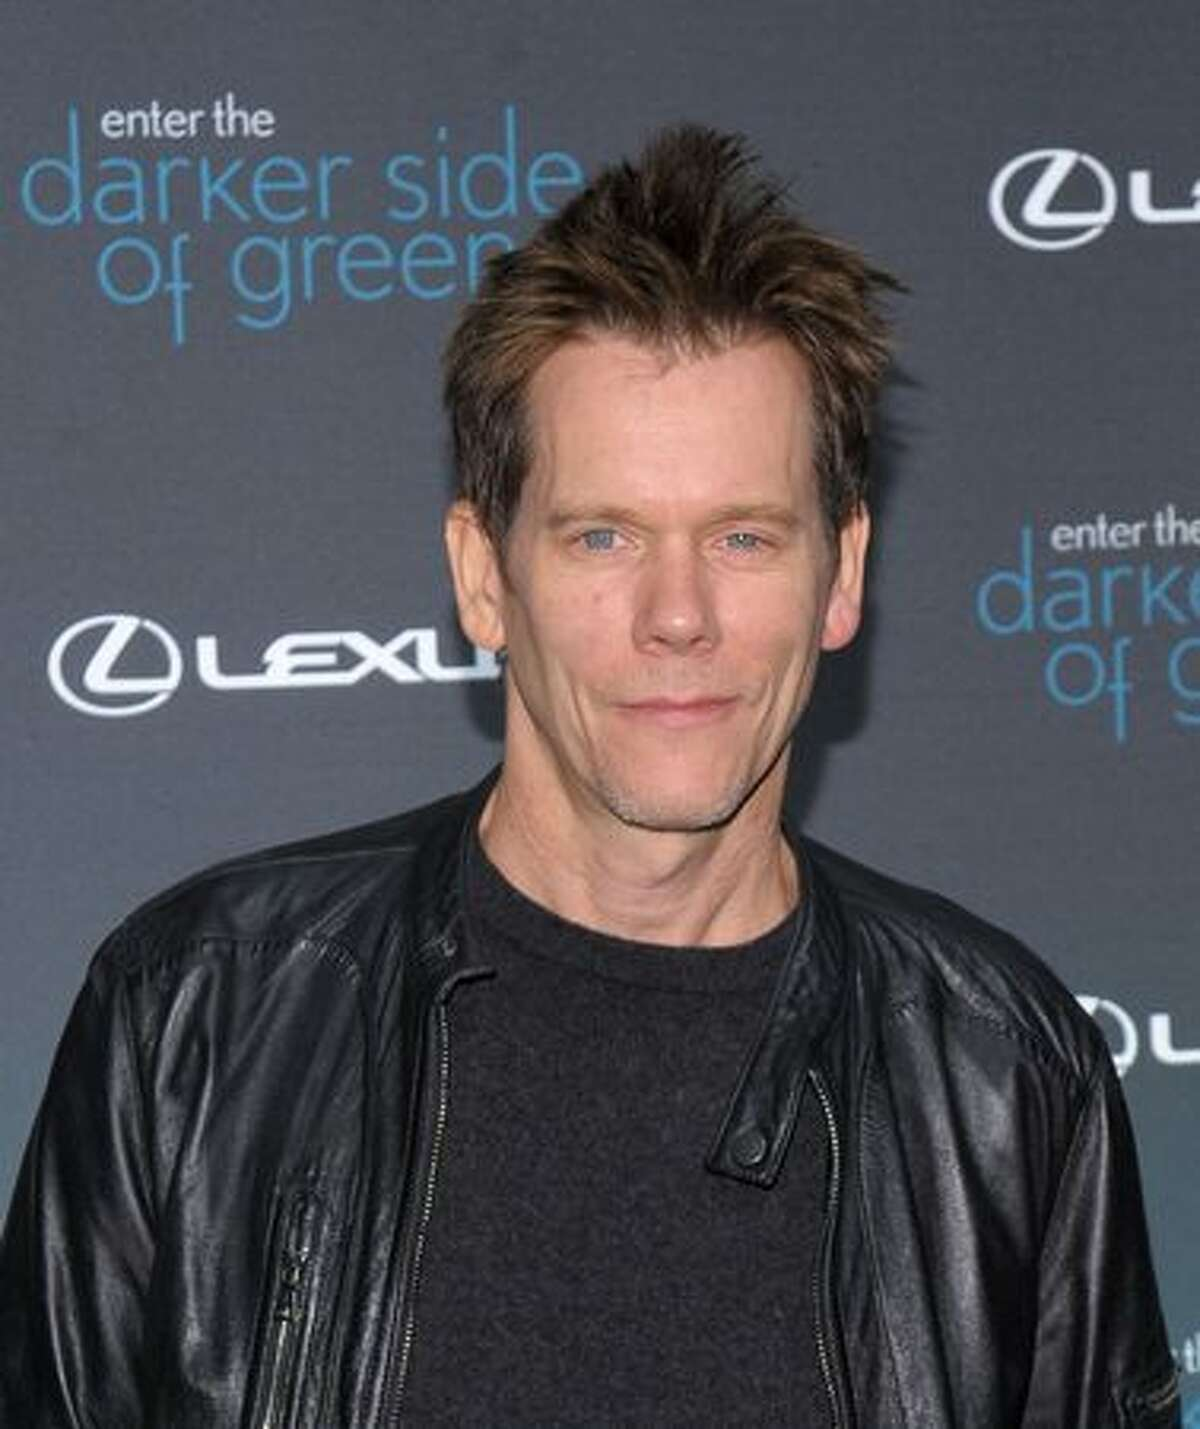 Actor Kevin Bacon attends The Darker Side of Green climate change debate at Skylight West in New York City.